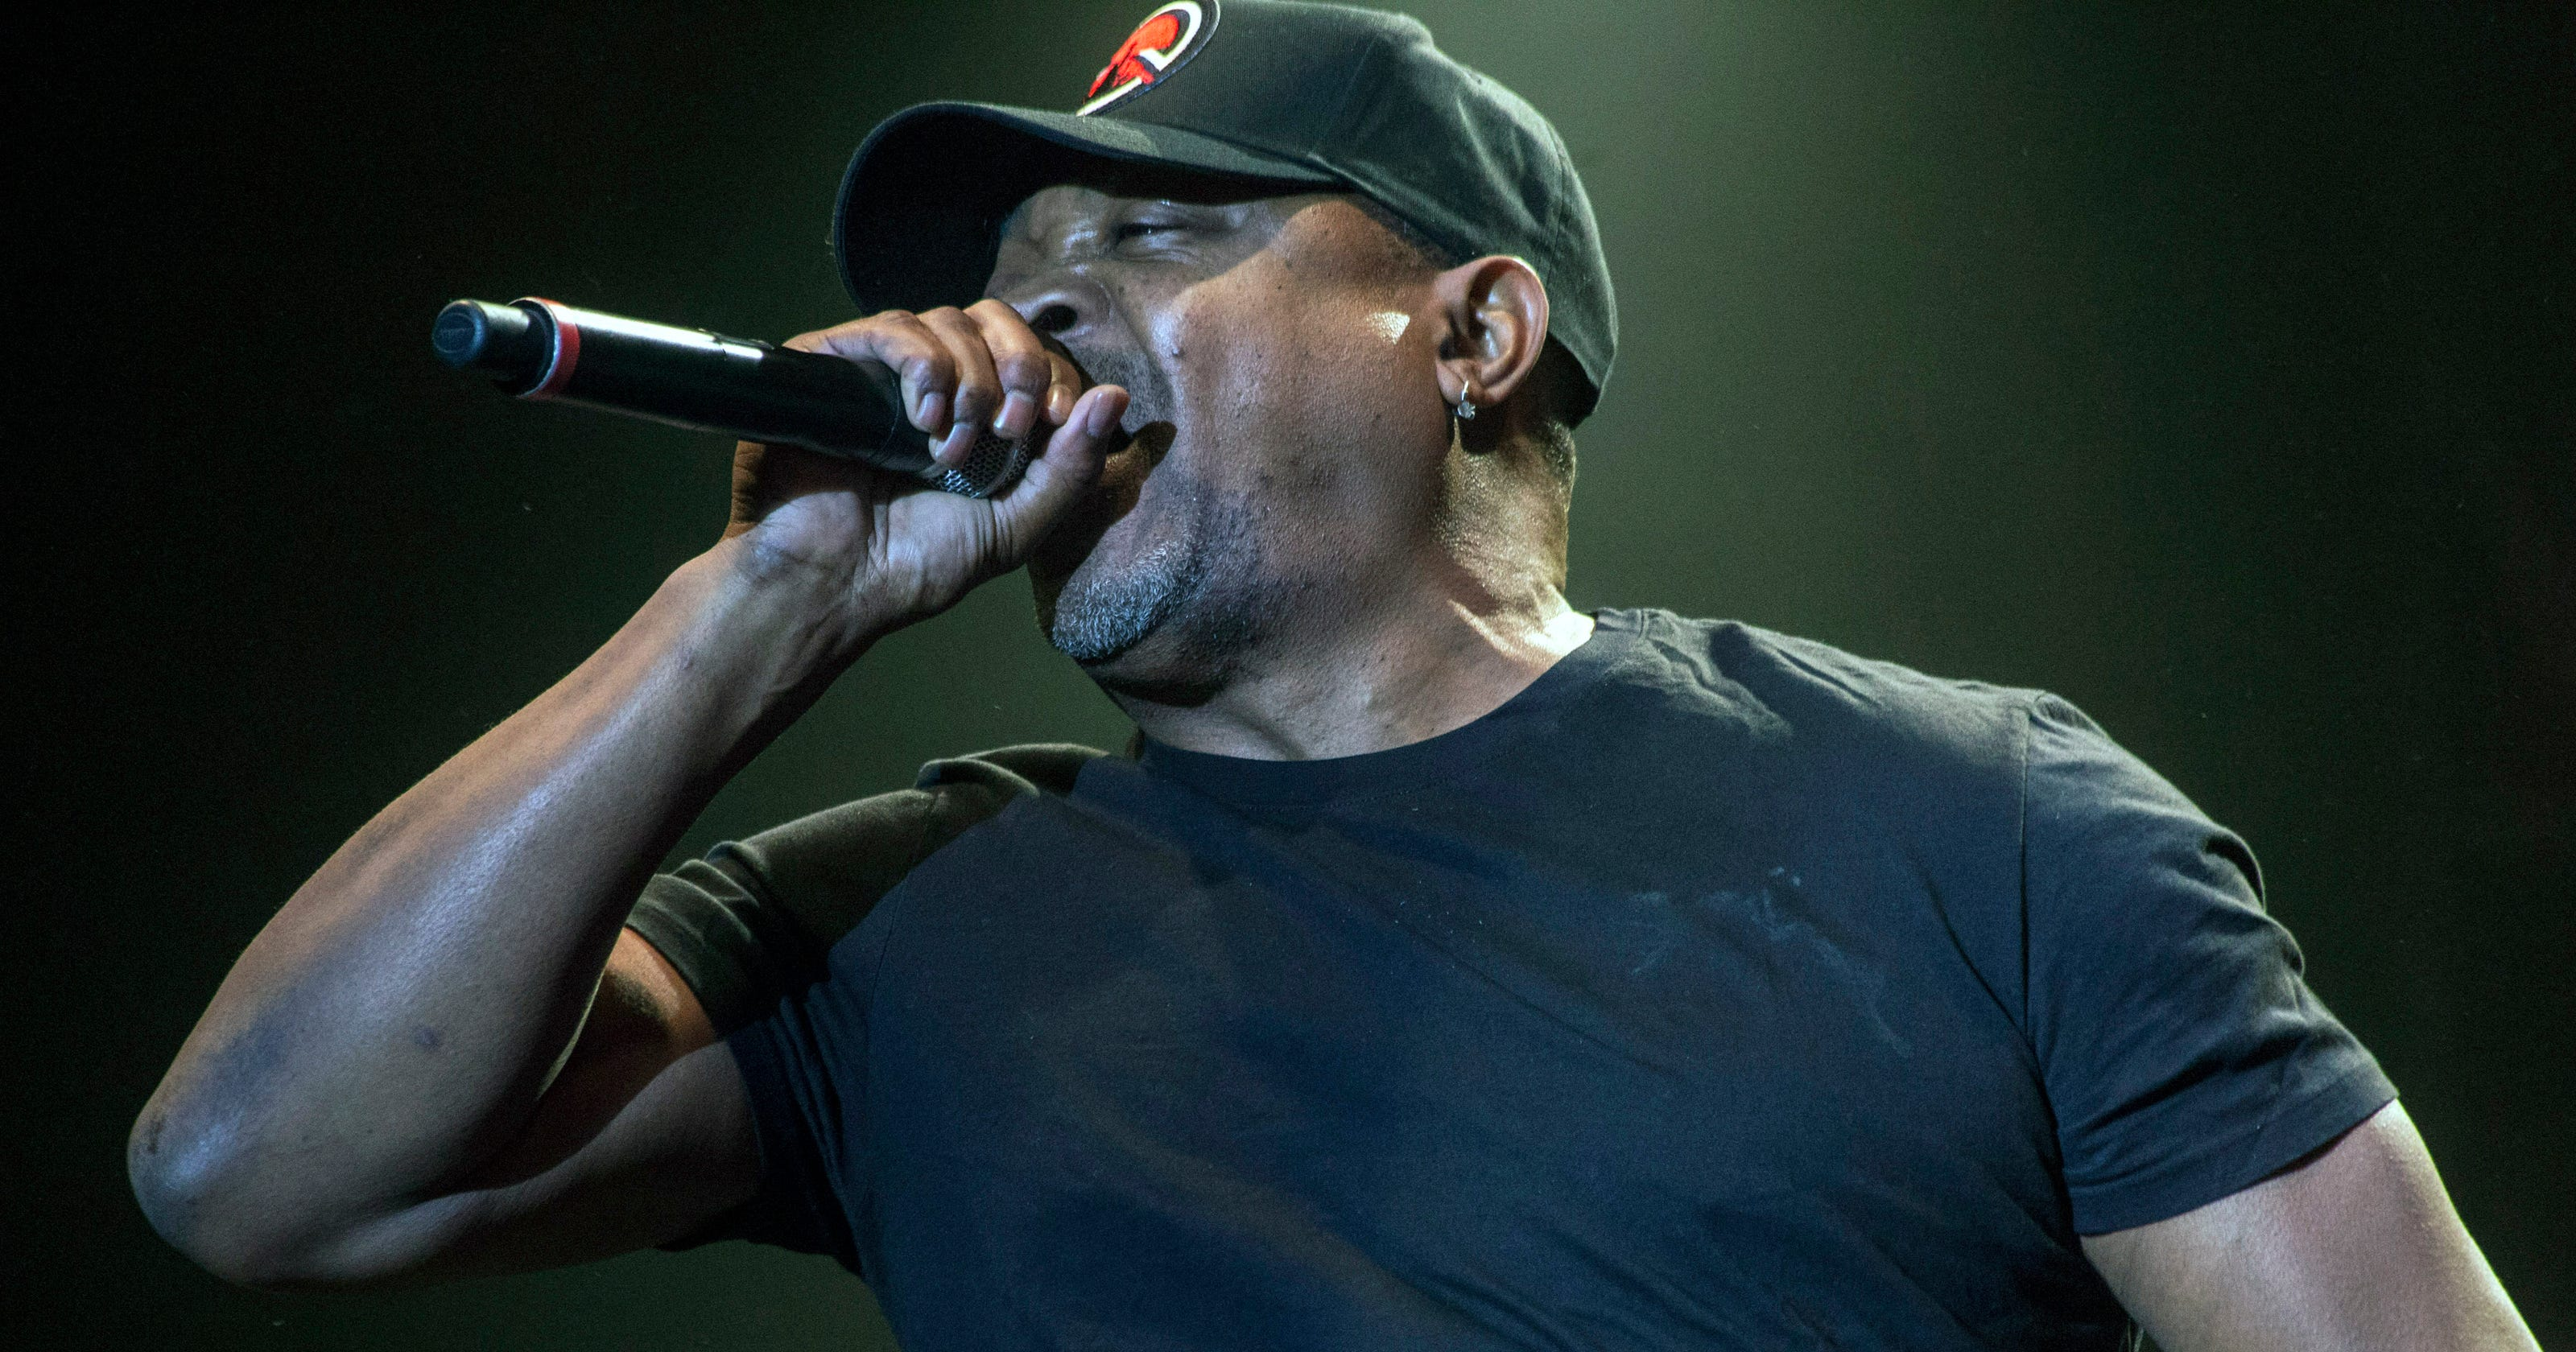 Cory Booker, Chuck D and more will talk voter suppression at the Hip-Hop Political Education Summit, which has Milwaukee ties